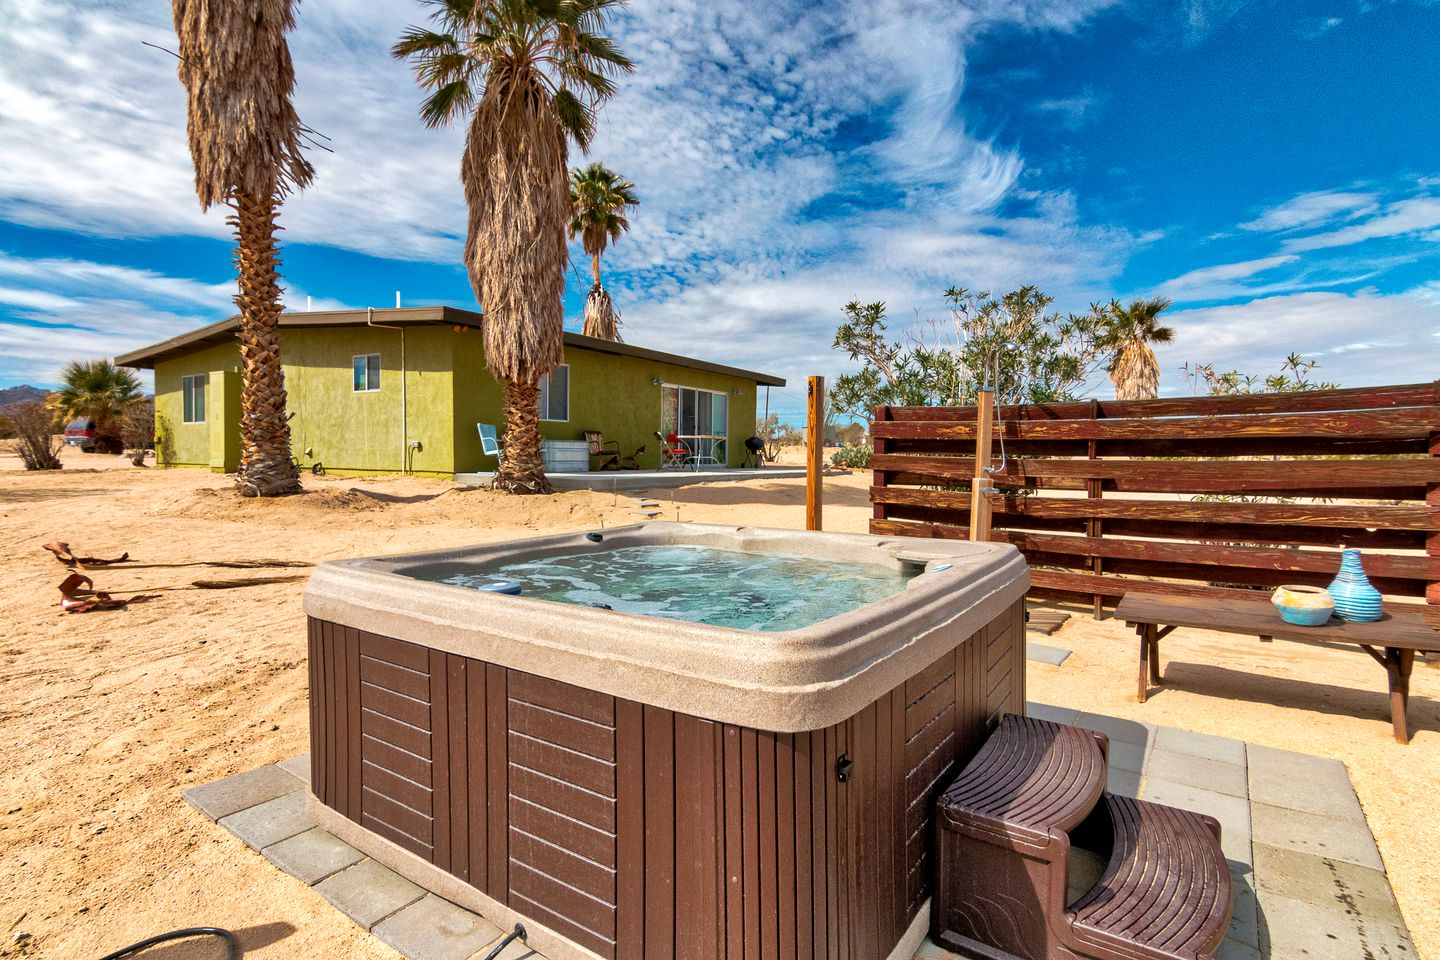 This rental is perfect for Joshua Tree vacations